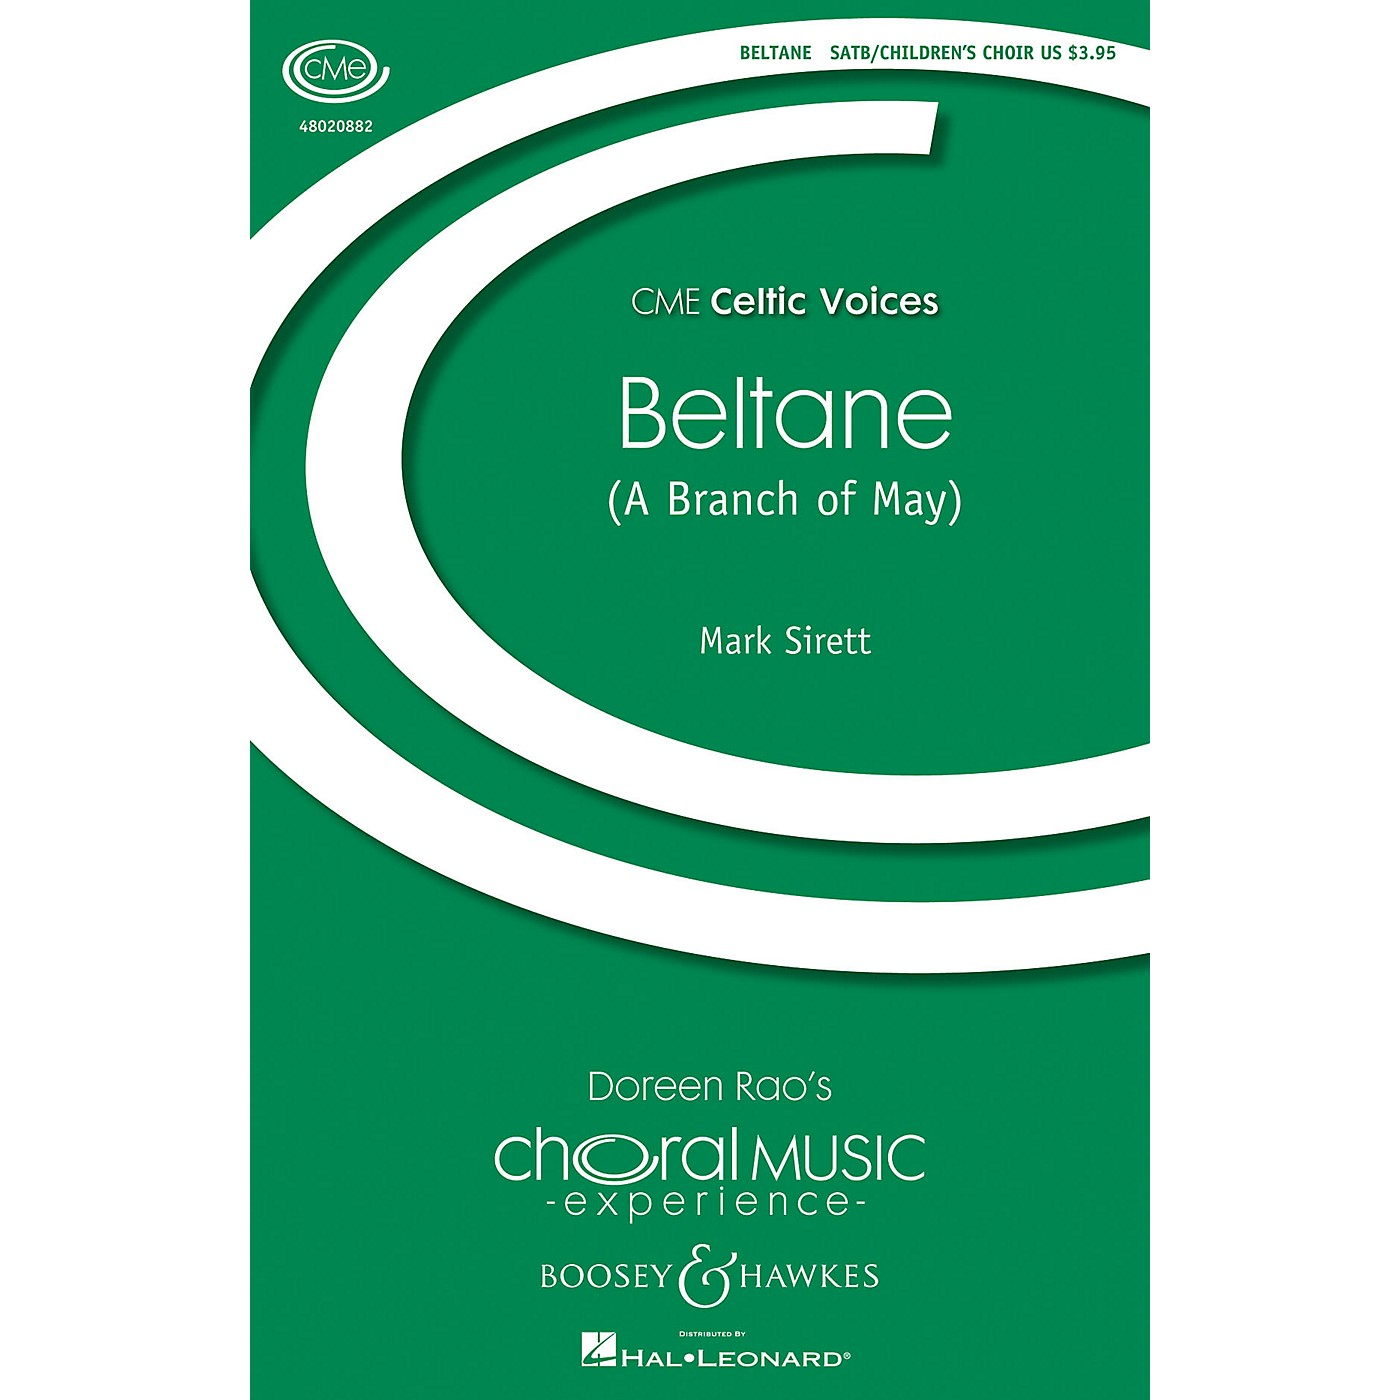 Boosey and Hawkes Beltane (A Branch of May) CME Celtic Voices SATB/CHILDREN'S CHOIR composed by Mark Sirett thumbnail